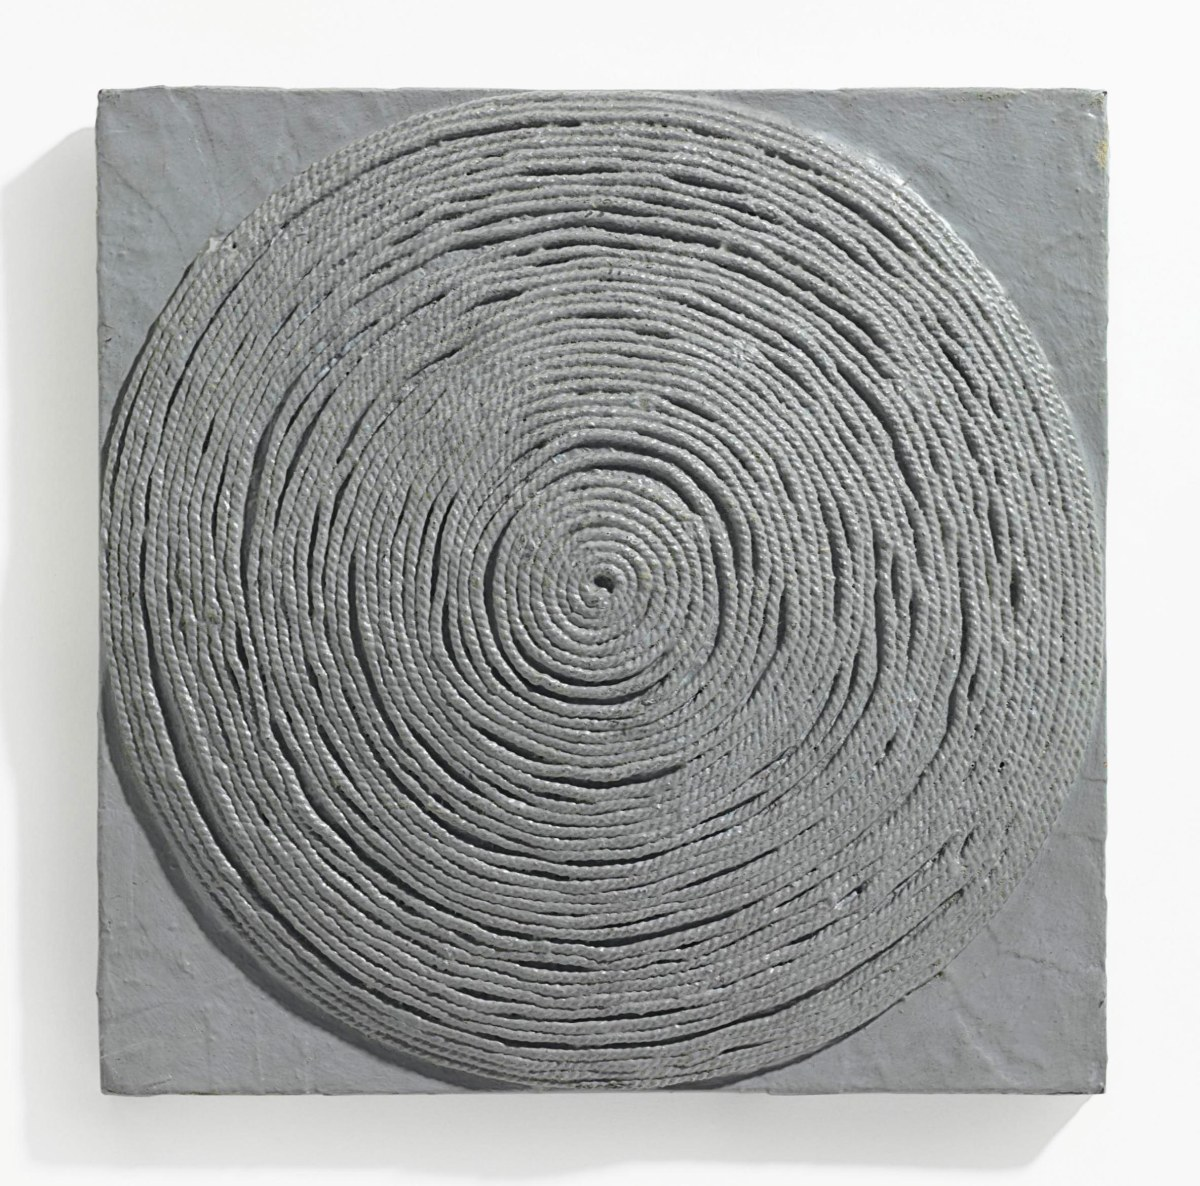 Untitled Sculpture Eva Hesse